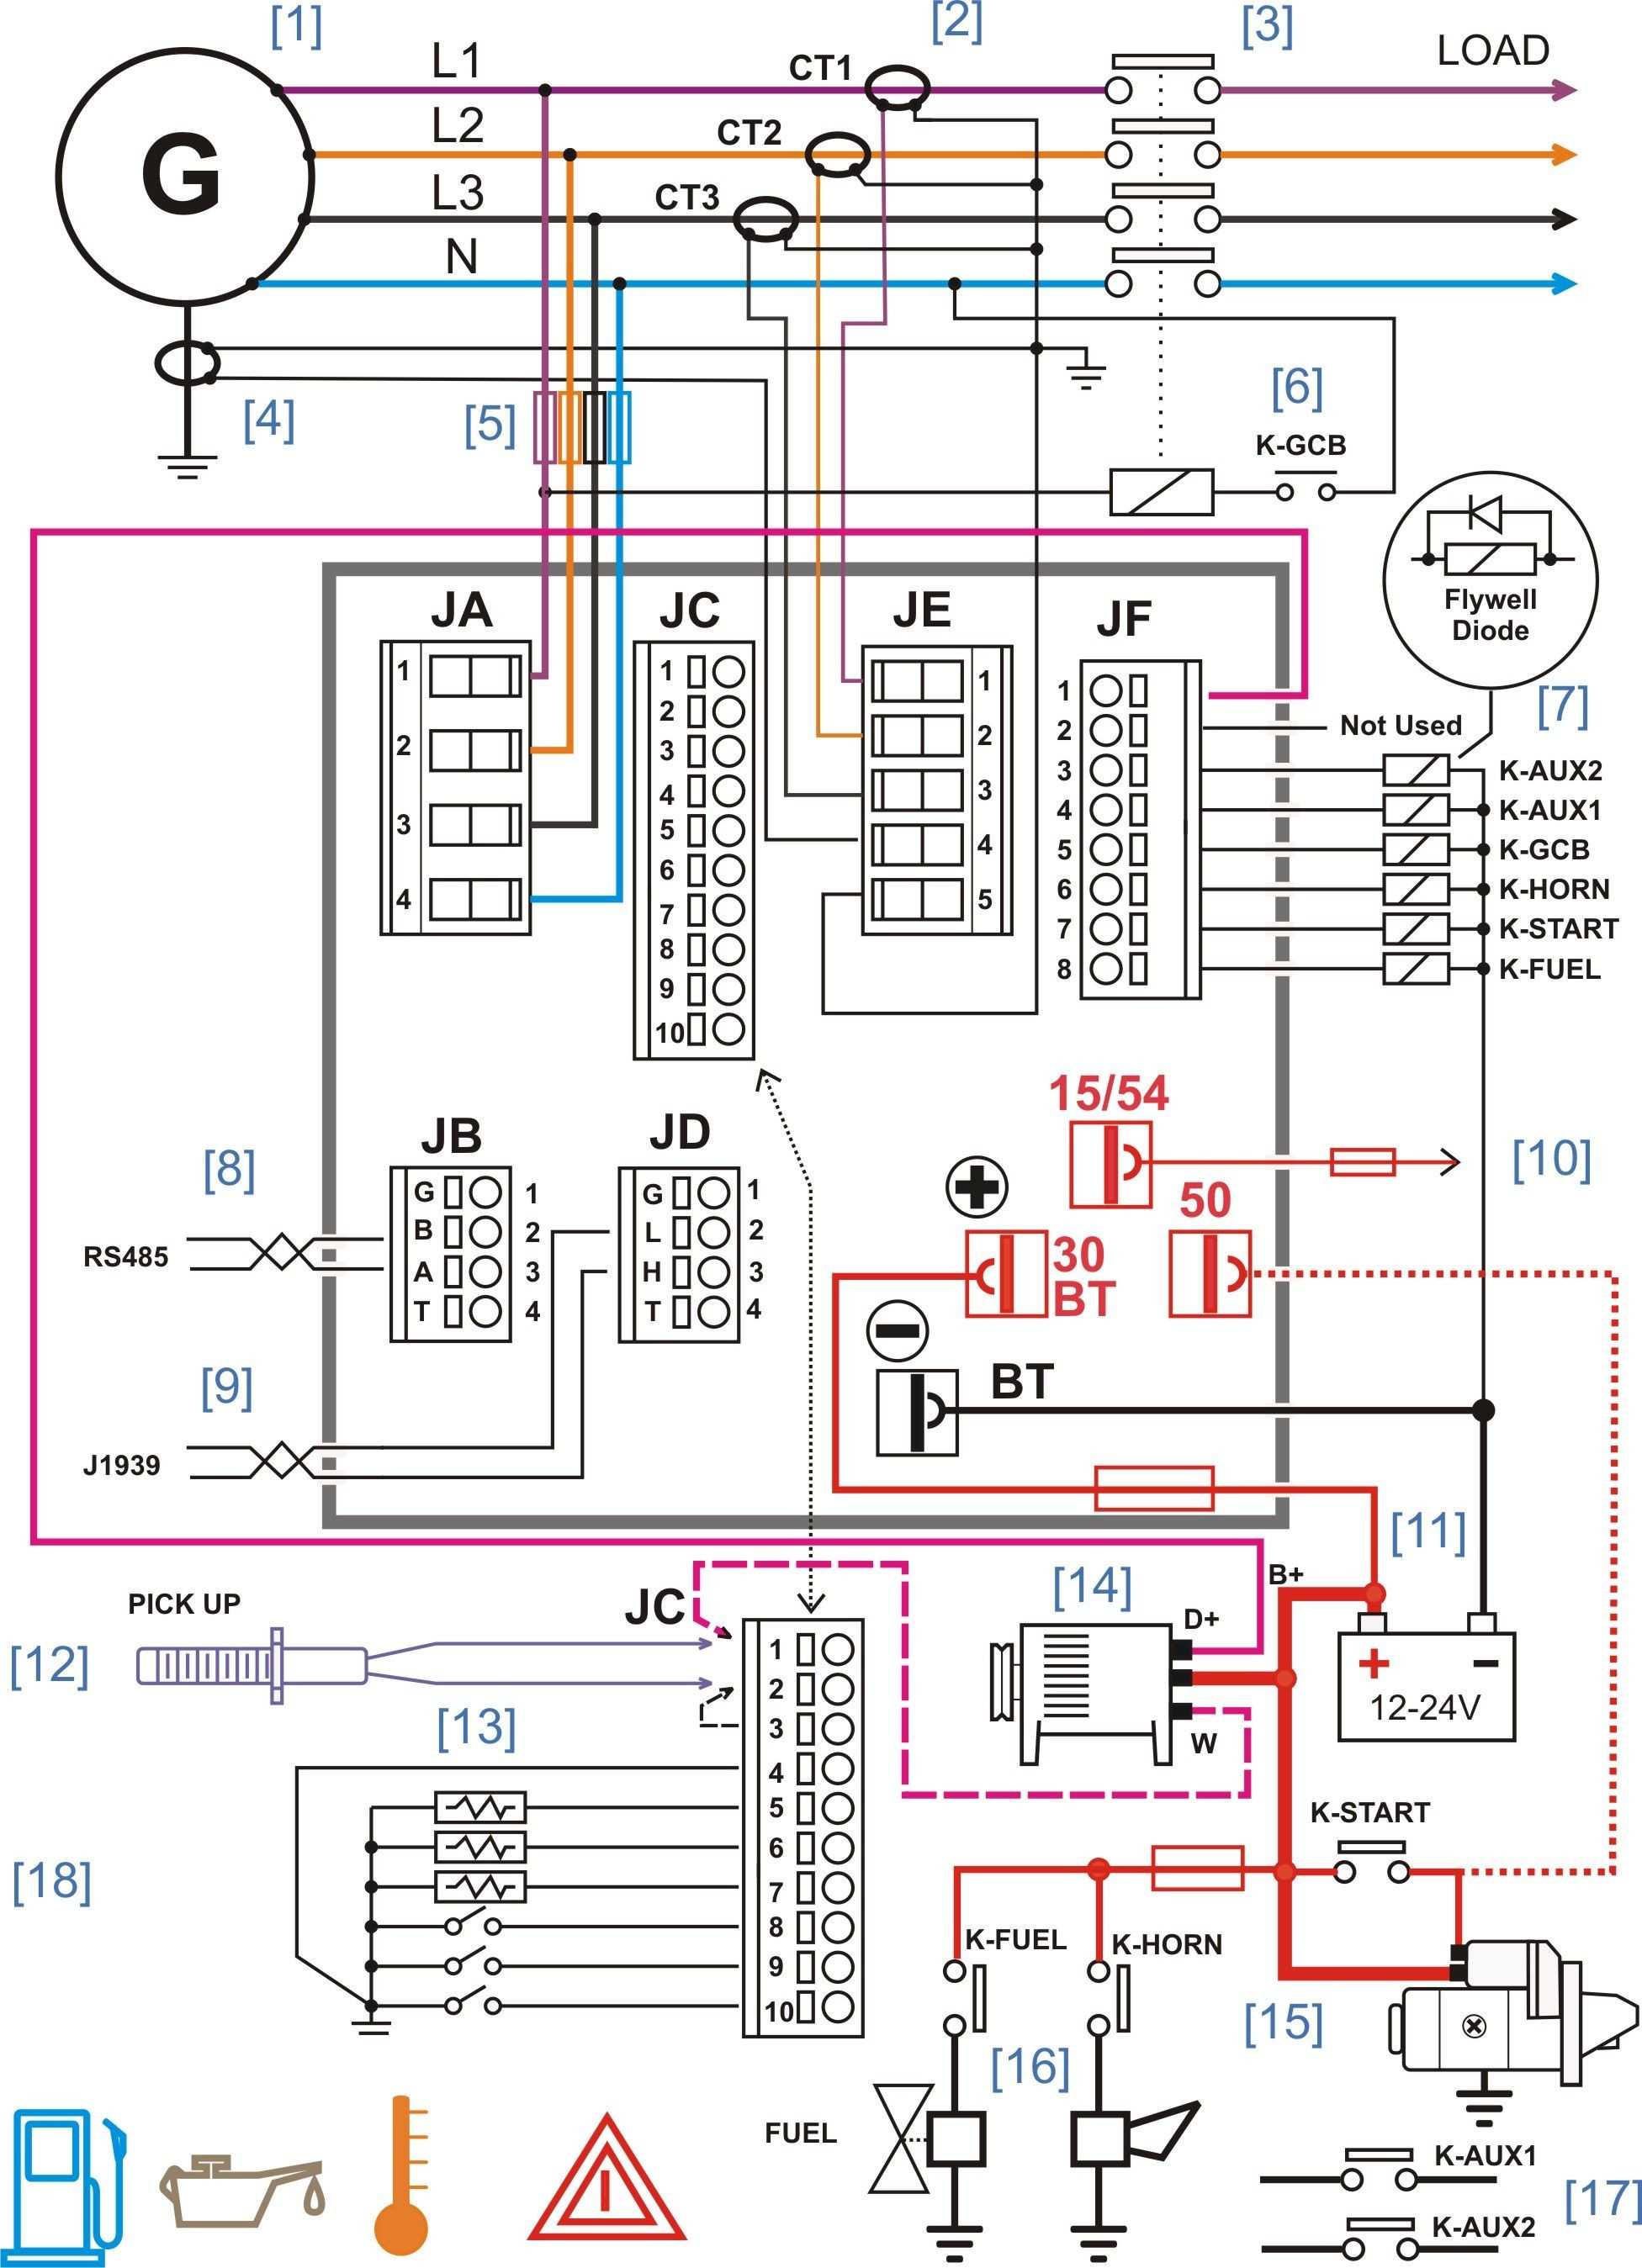 electrical house wiring diagram software Download-House Wiring Diagram App Refrence Electrical Wiring Diagram software New 18-d